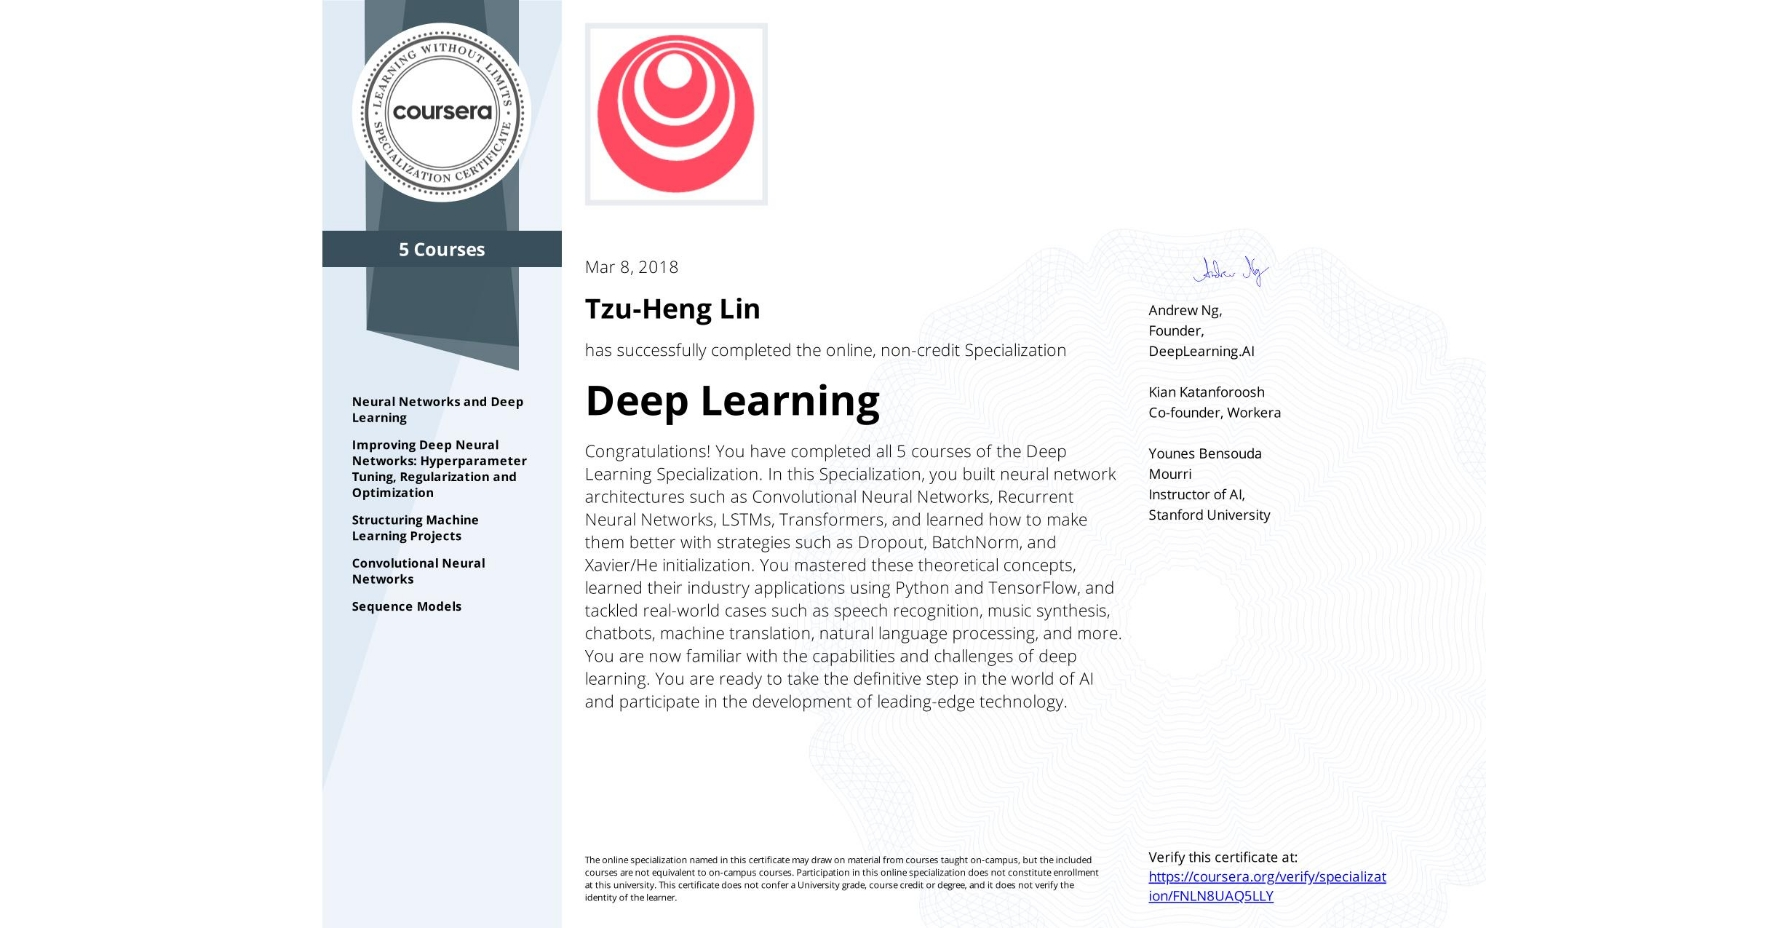 View certificate for Tzu-Heng Lin, Deep Learning, offered through Coursera. Congratulations! You have completed all 5 courses of the Deep Learning Specialization.  In this Specialization, you built neural network architectures such as Convolutional Neural Networks, Recurrent Neural Networks, LSTMs, Transformers, and learned how to make them better with strategies such as Dropout, BatchNorm, and Xavier/He initialization. You mastered these theoretical concepts, learned their industry applications using Python and TensorFlow, and tackled real-world cases such as speech recognition, music synthesis, chatbots, machine translation, natural language processing, and more.  You are now familiar with the capabilities and challenges of deep learning. You are ready to take the definitive step in the world of AI and participate in the development of leading-edge technology.